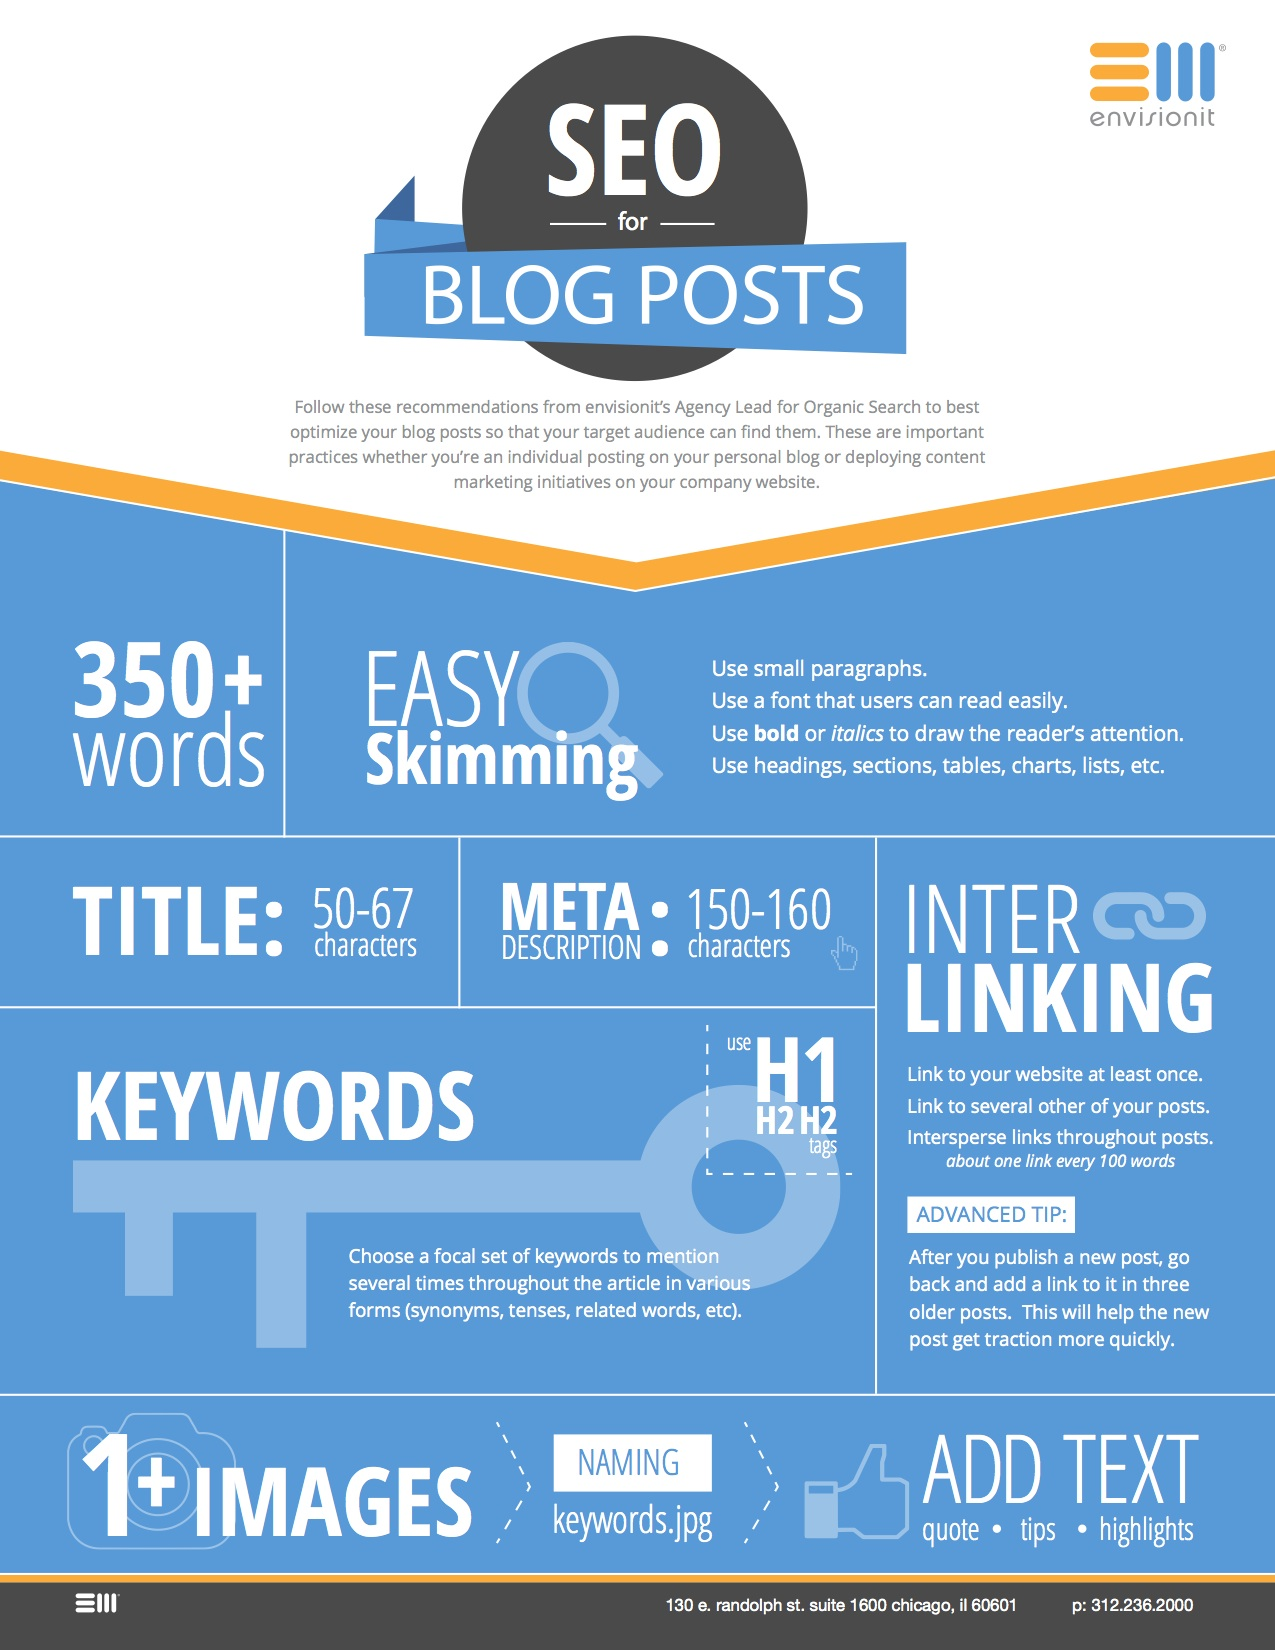 Guide to SEO for Blog Posts | envisionit